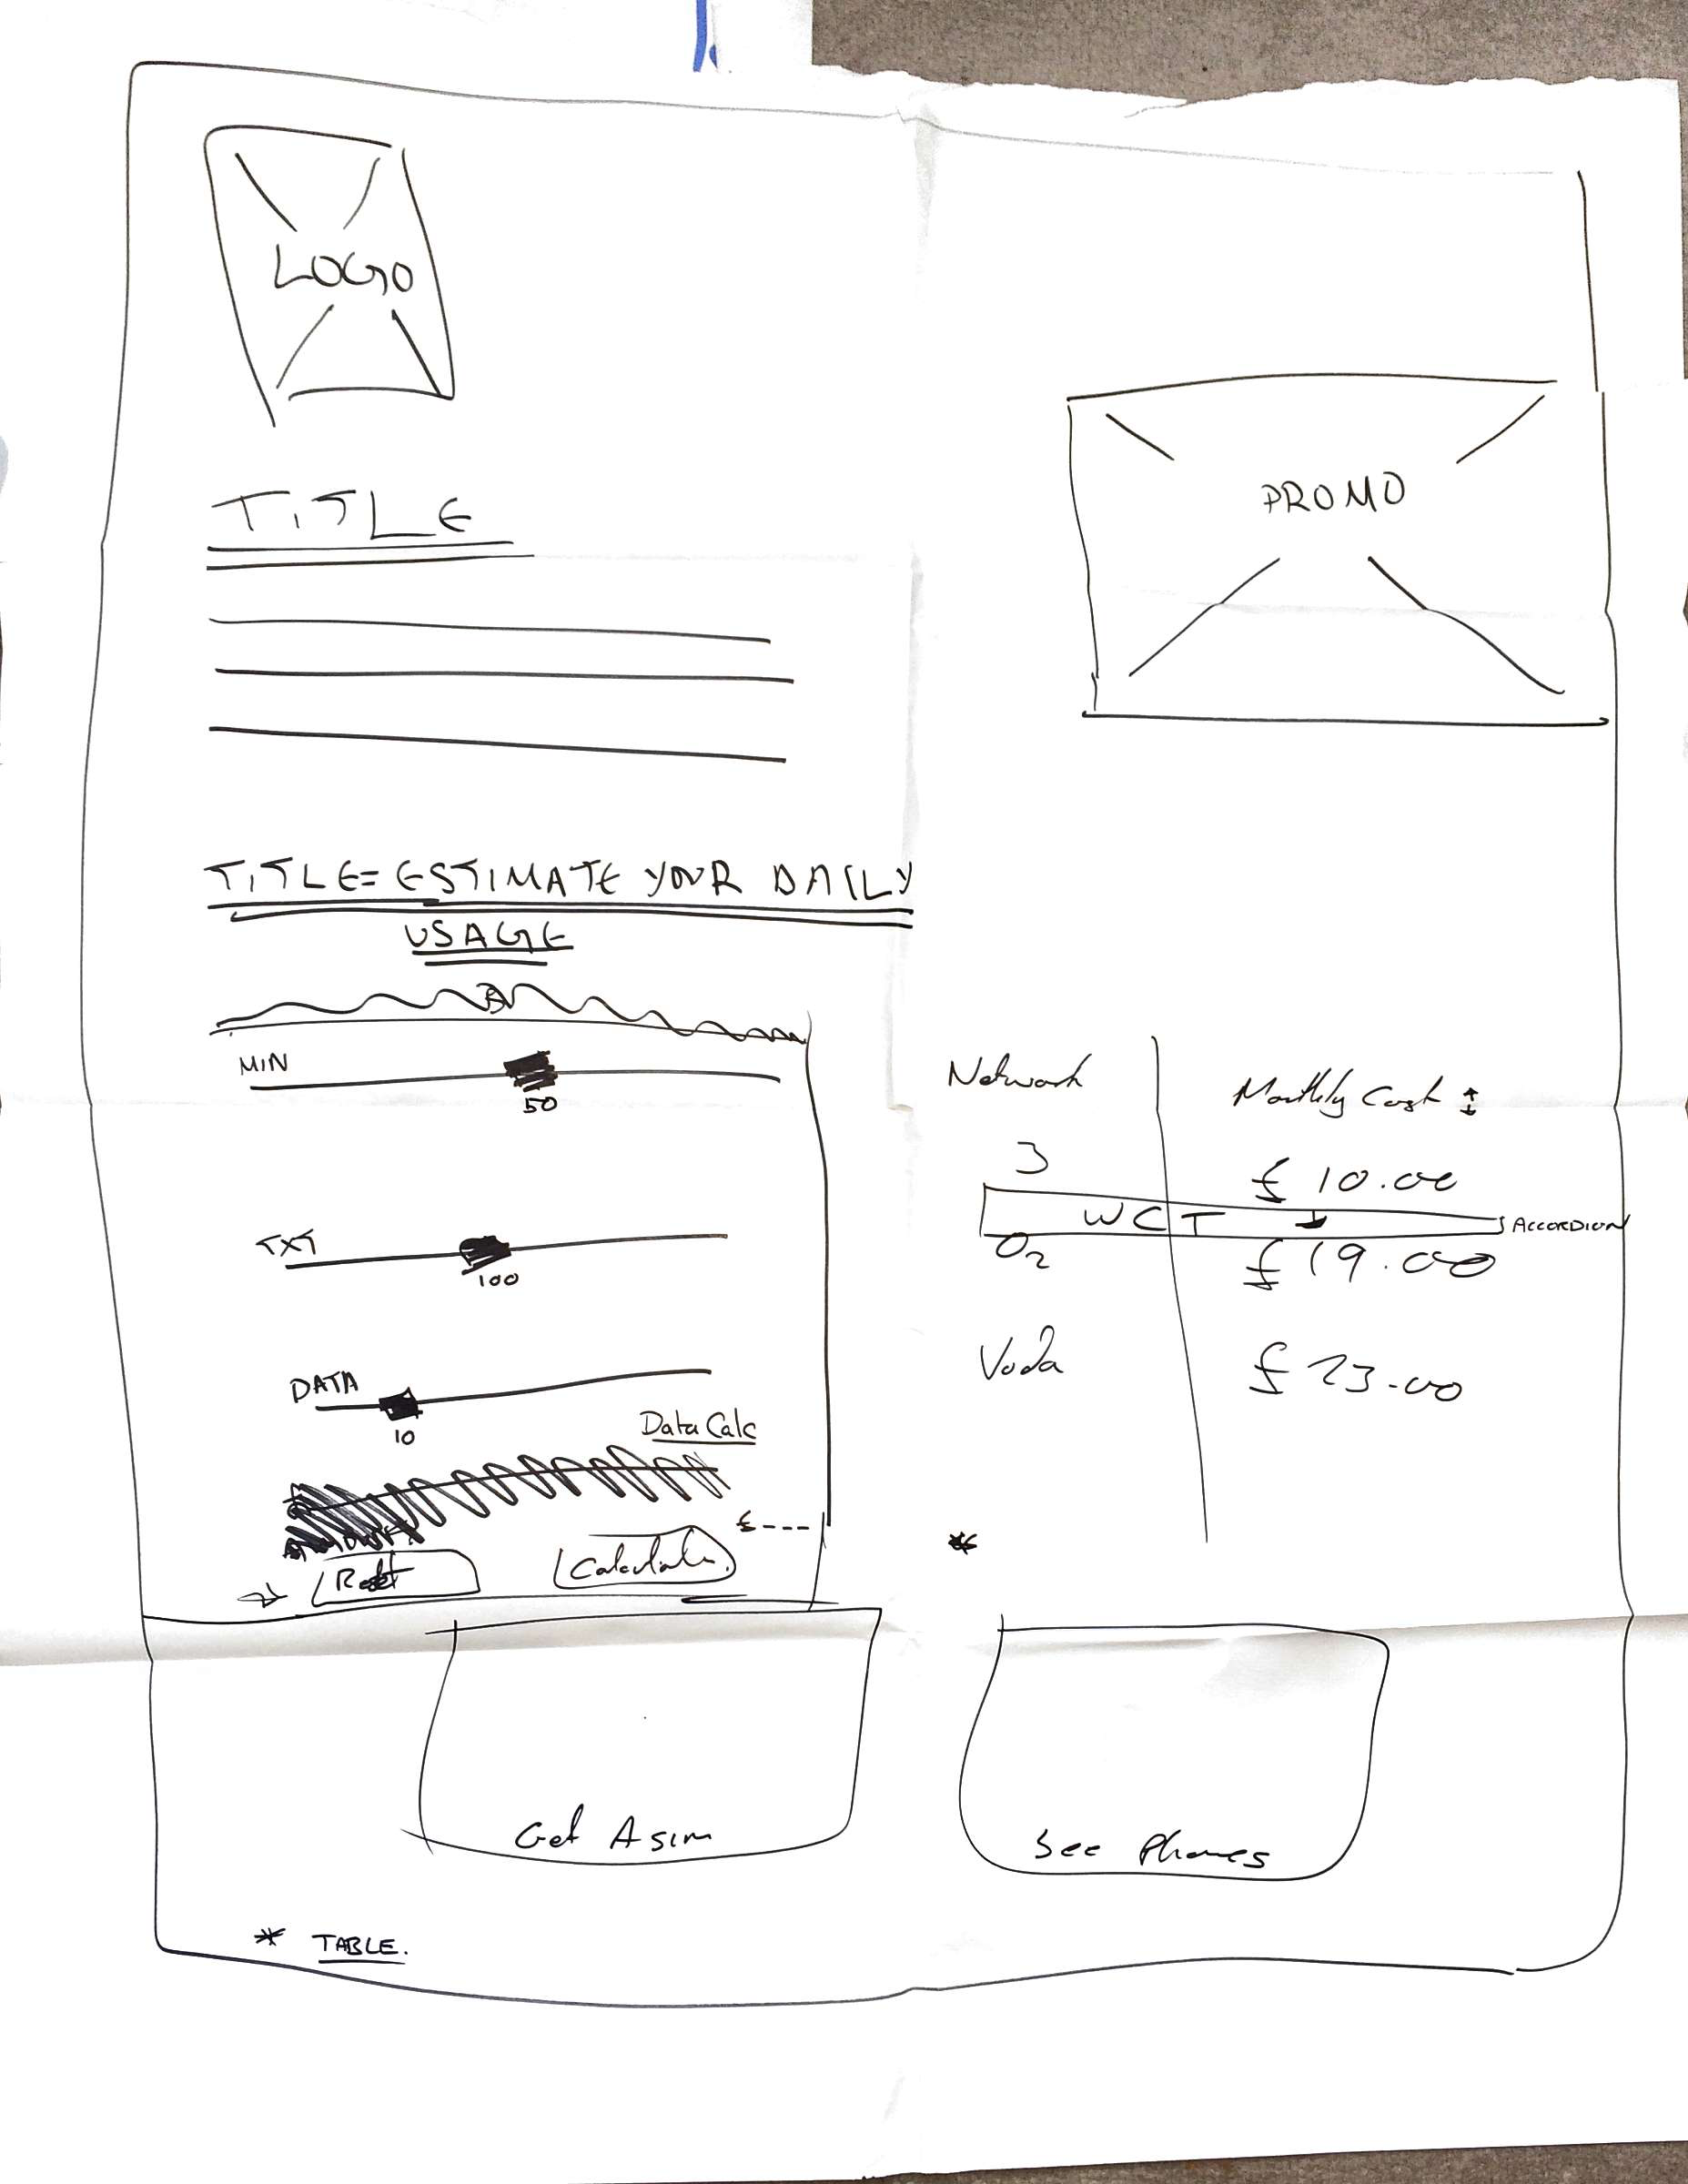 6 Evernote Snapshot 20150203 123512.png